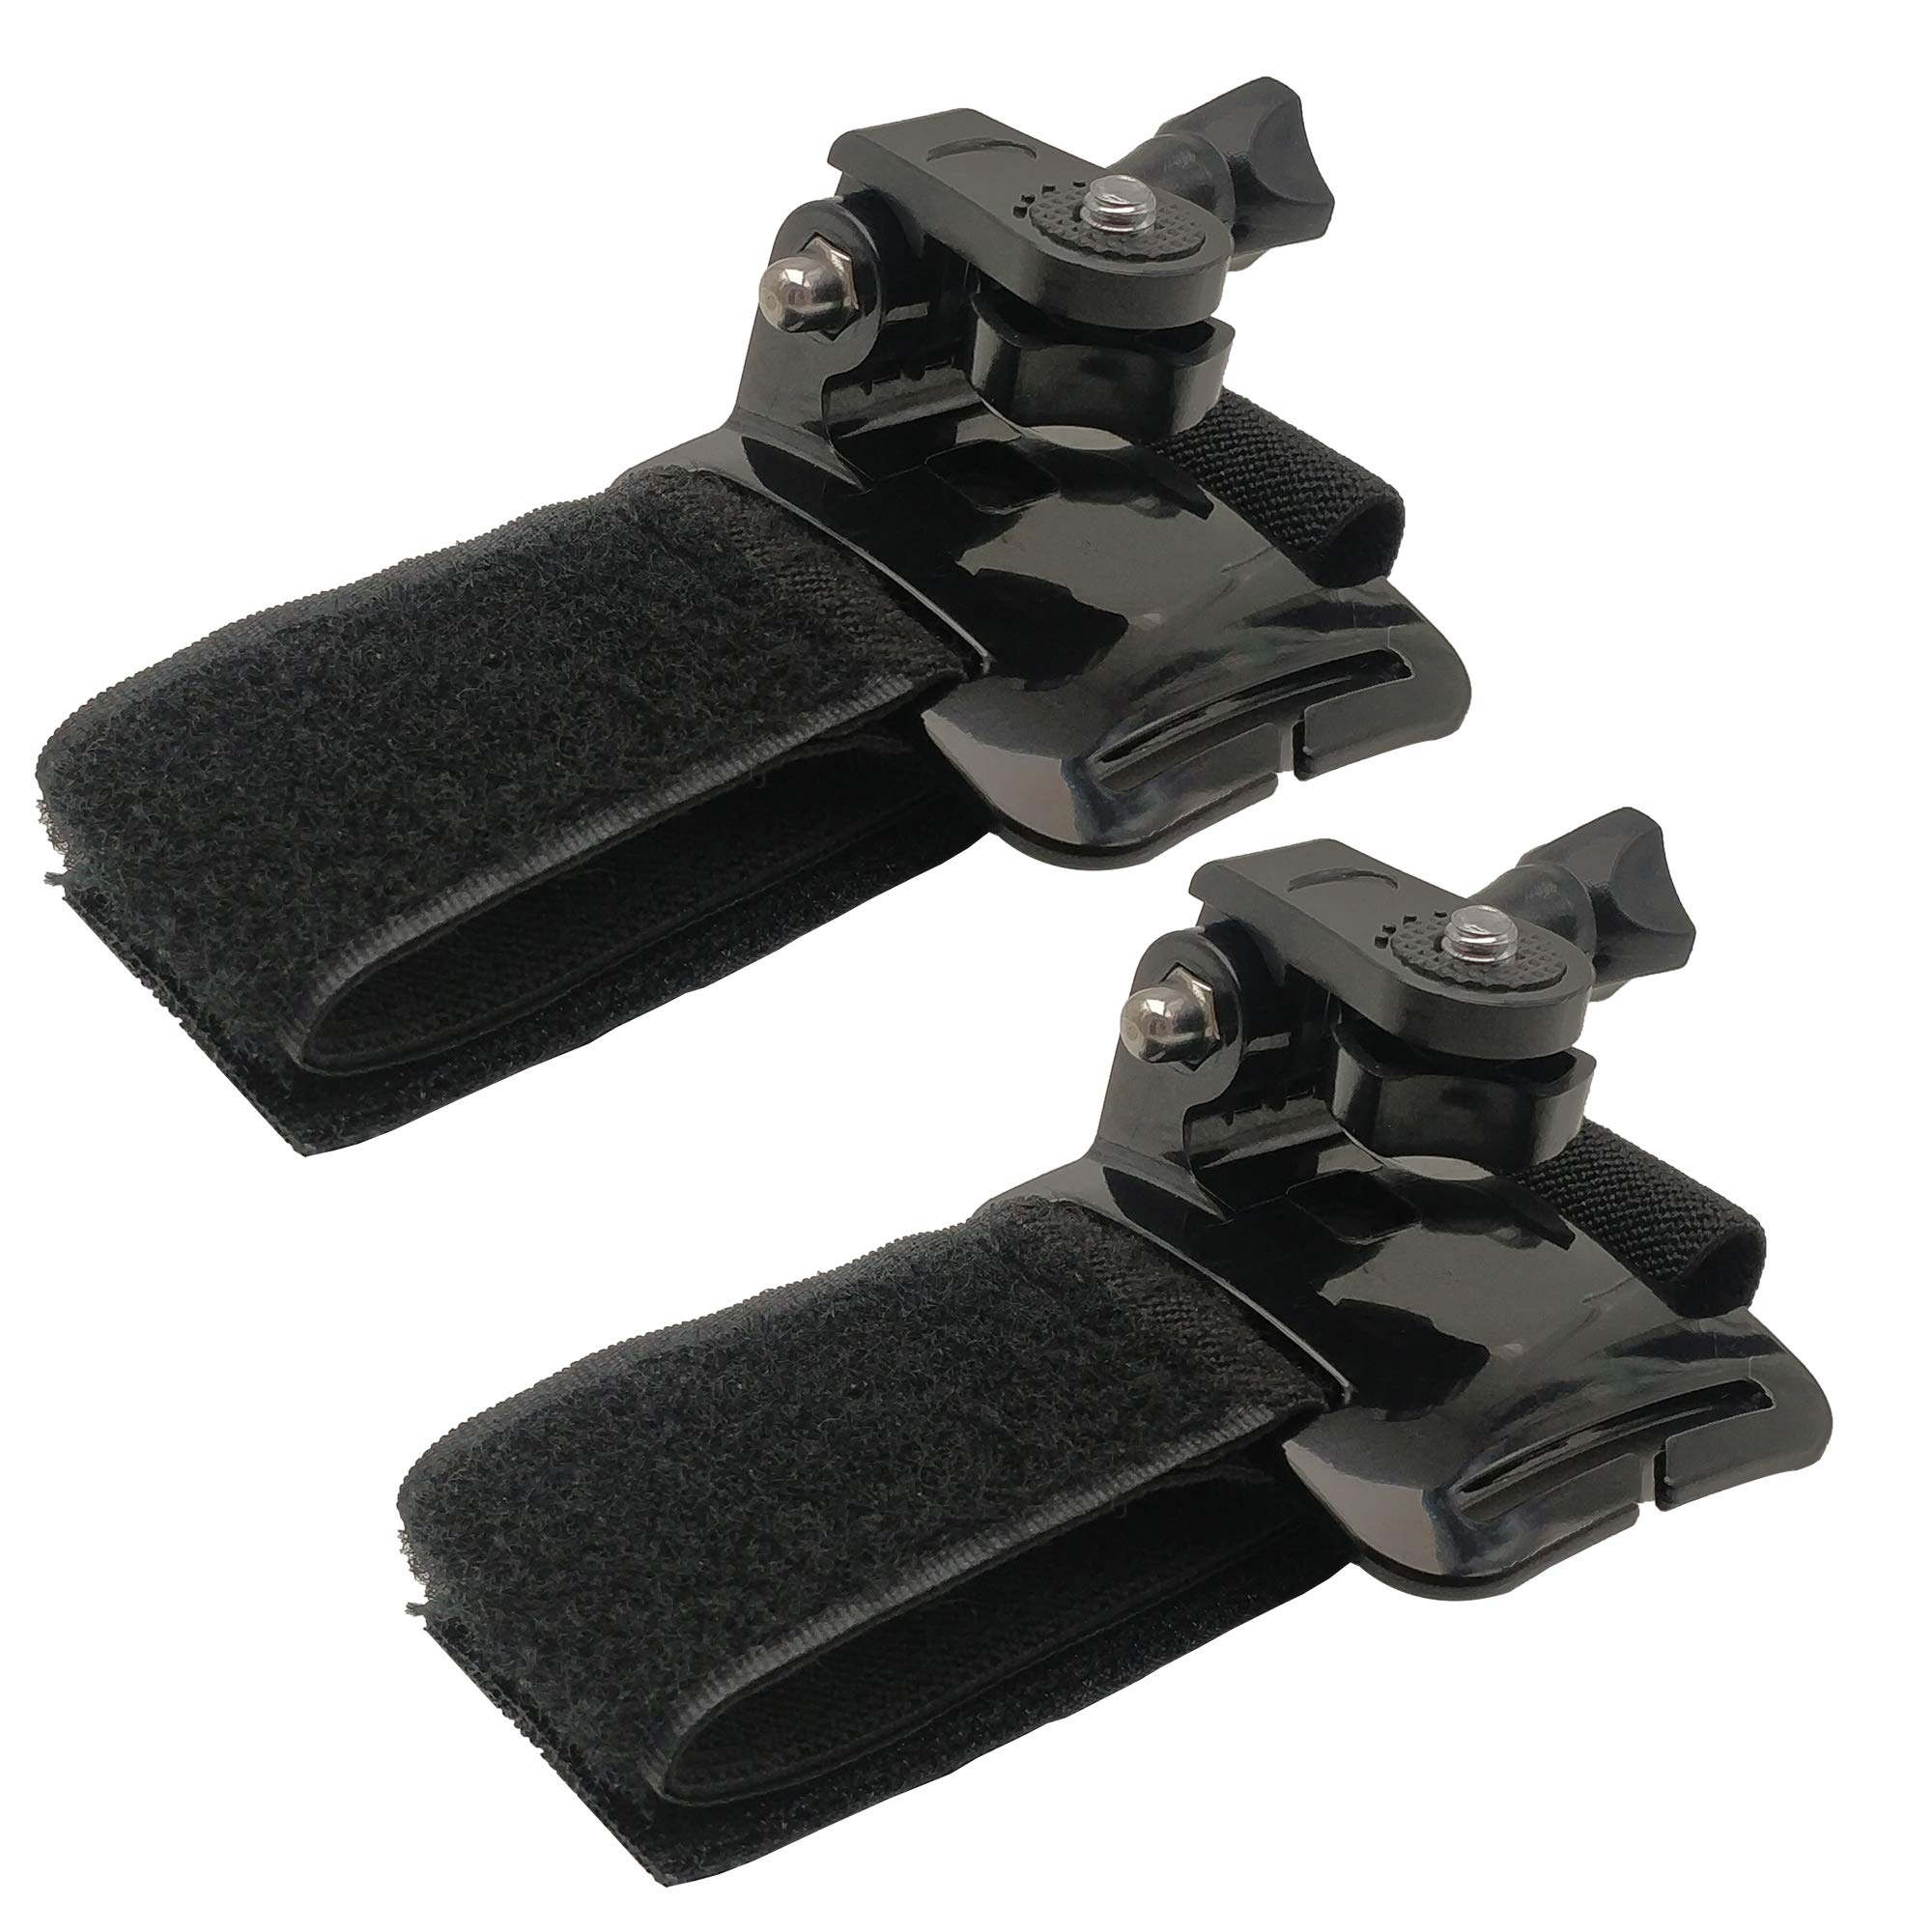 [2 Pack] Orzero Stand Strap mount For HTC VIVE Tracker 2017/2018 (HTC VIVE Tracker not included), Firm bracket, Precision full-body tracking for VR and Motion Capture[Lifetime Replacement Warranty]